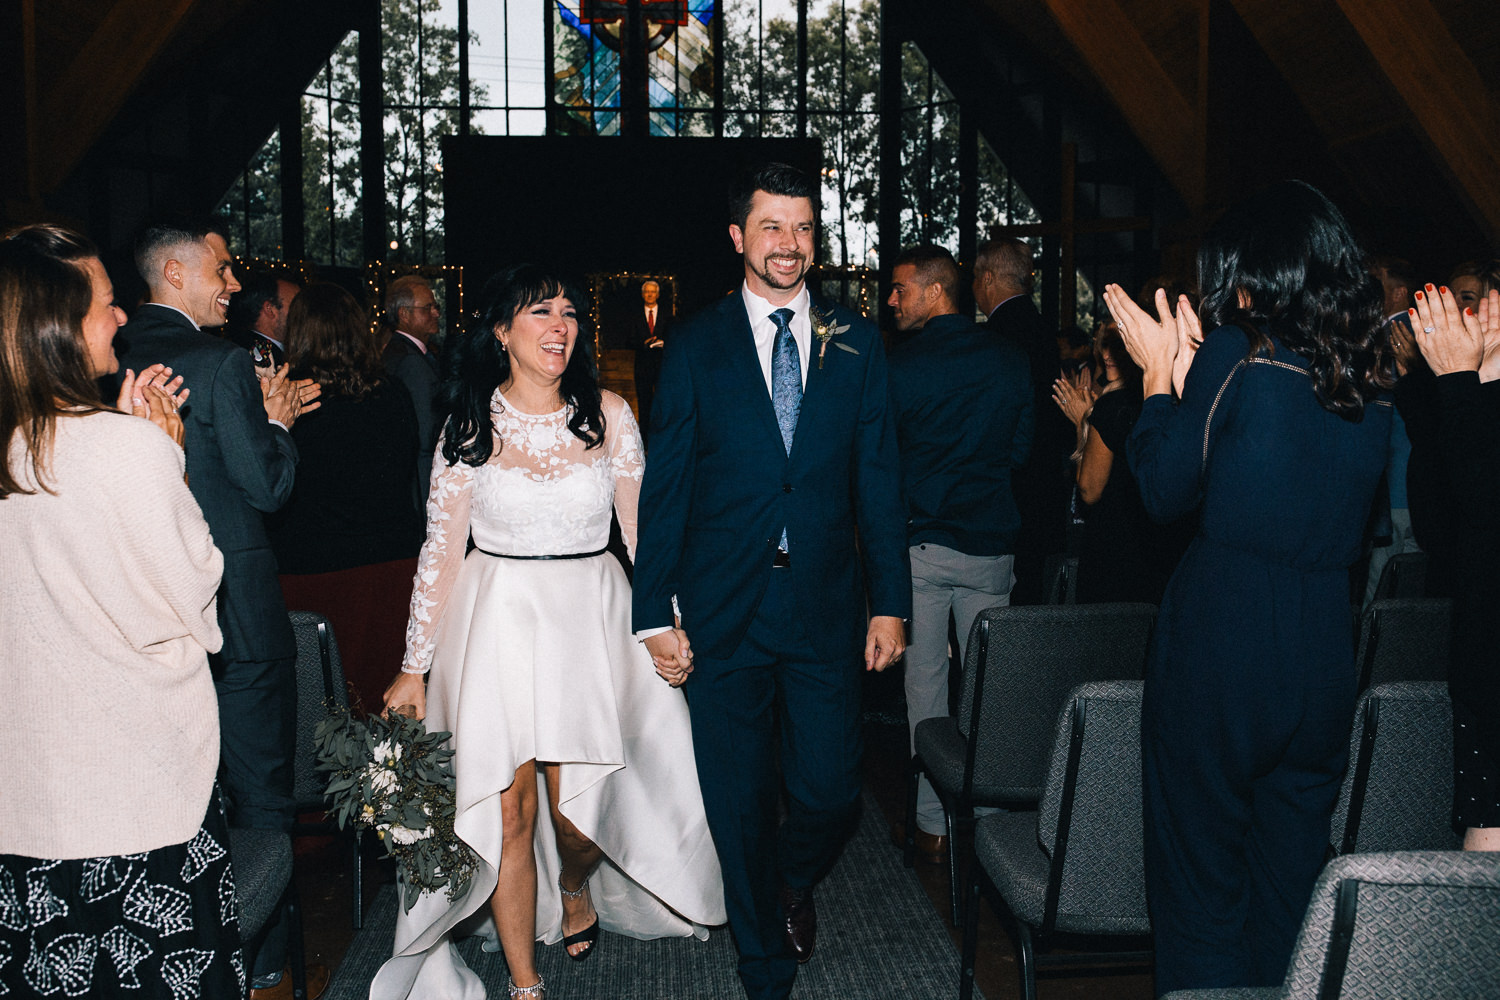 2019_05_ 182019.05.19 Lisa + Eddie South Bay Wedding Blog Photos Edited For Web 0101.jpg